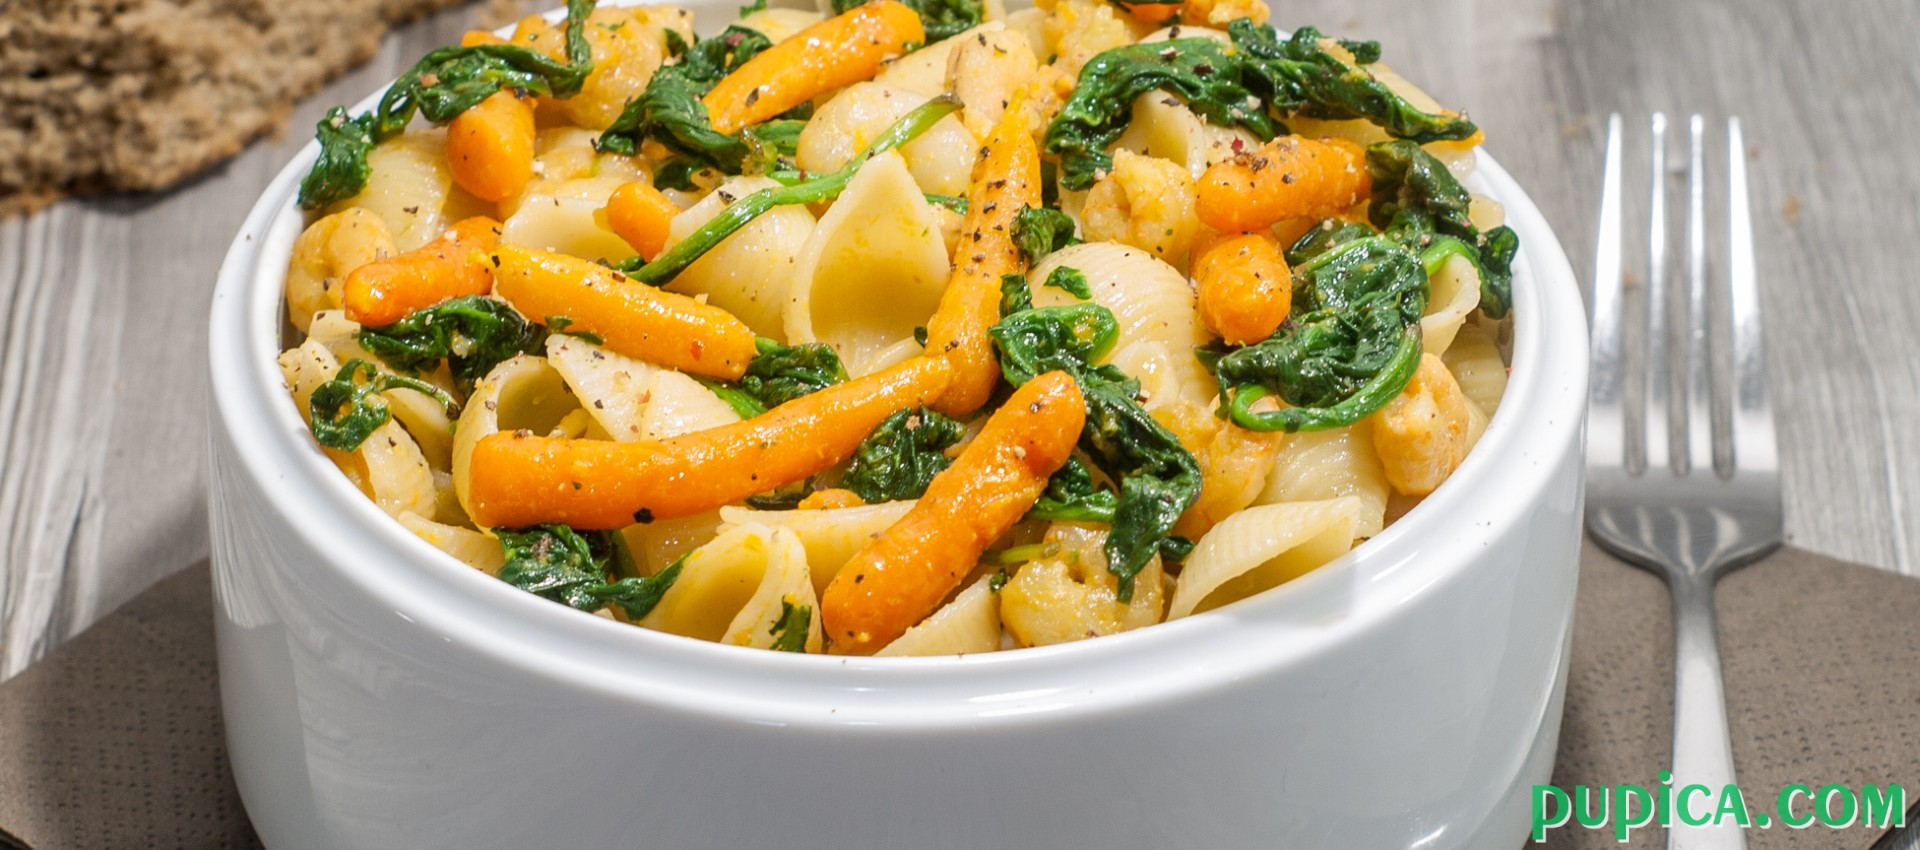 Pasta with Baby Spinach, Shrimps and Baby Carrots